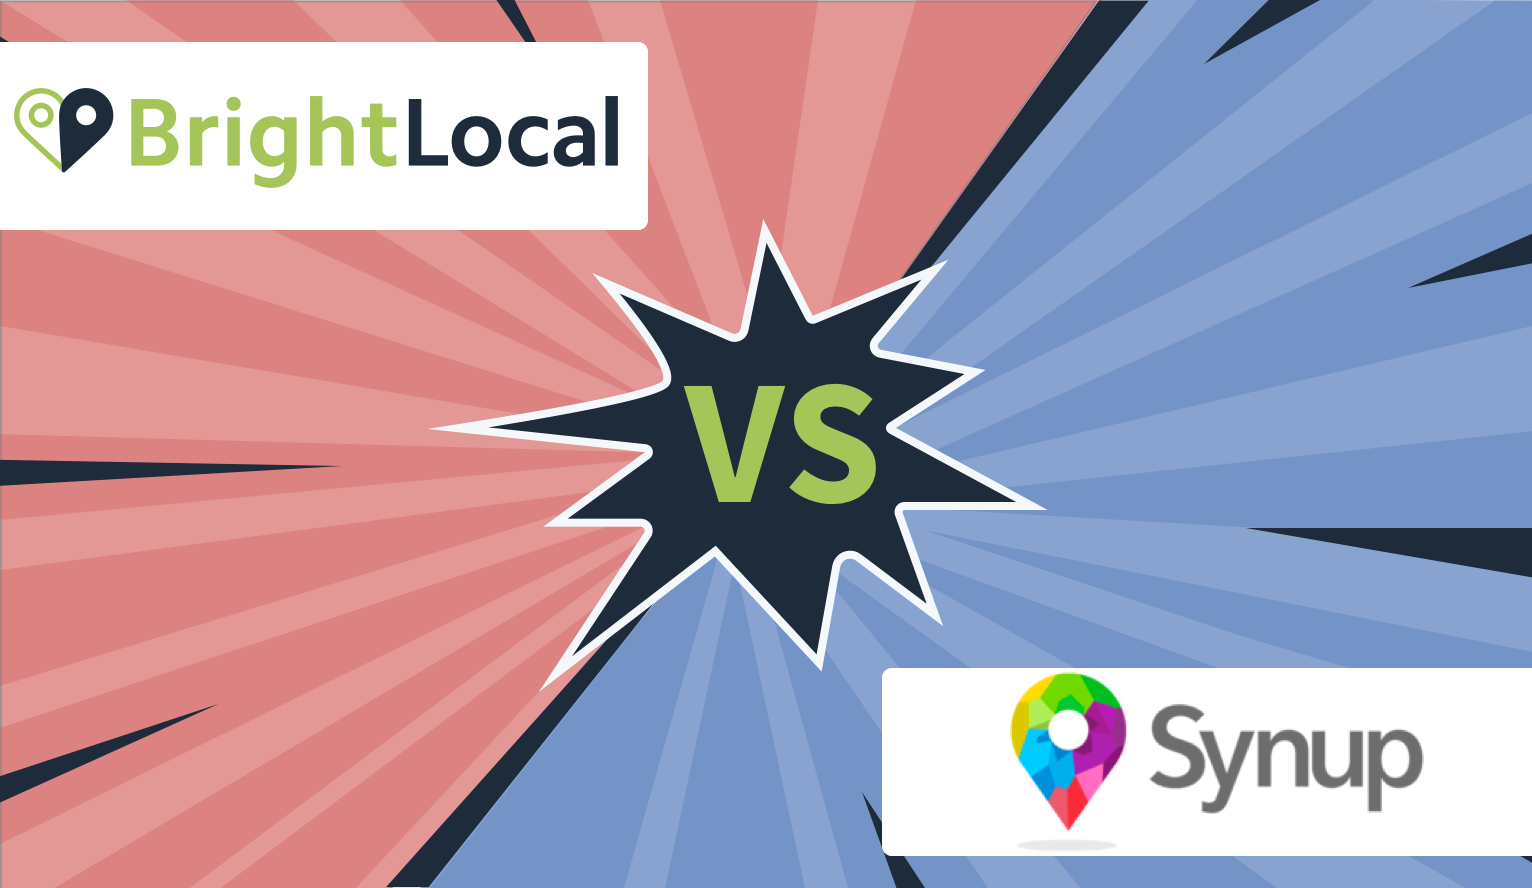 Synup vs BrightLocal